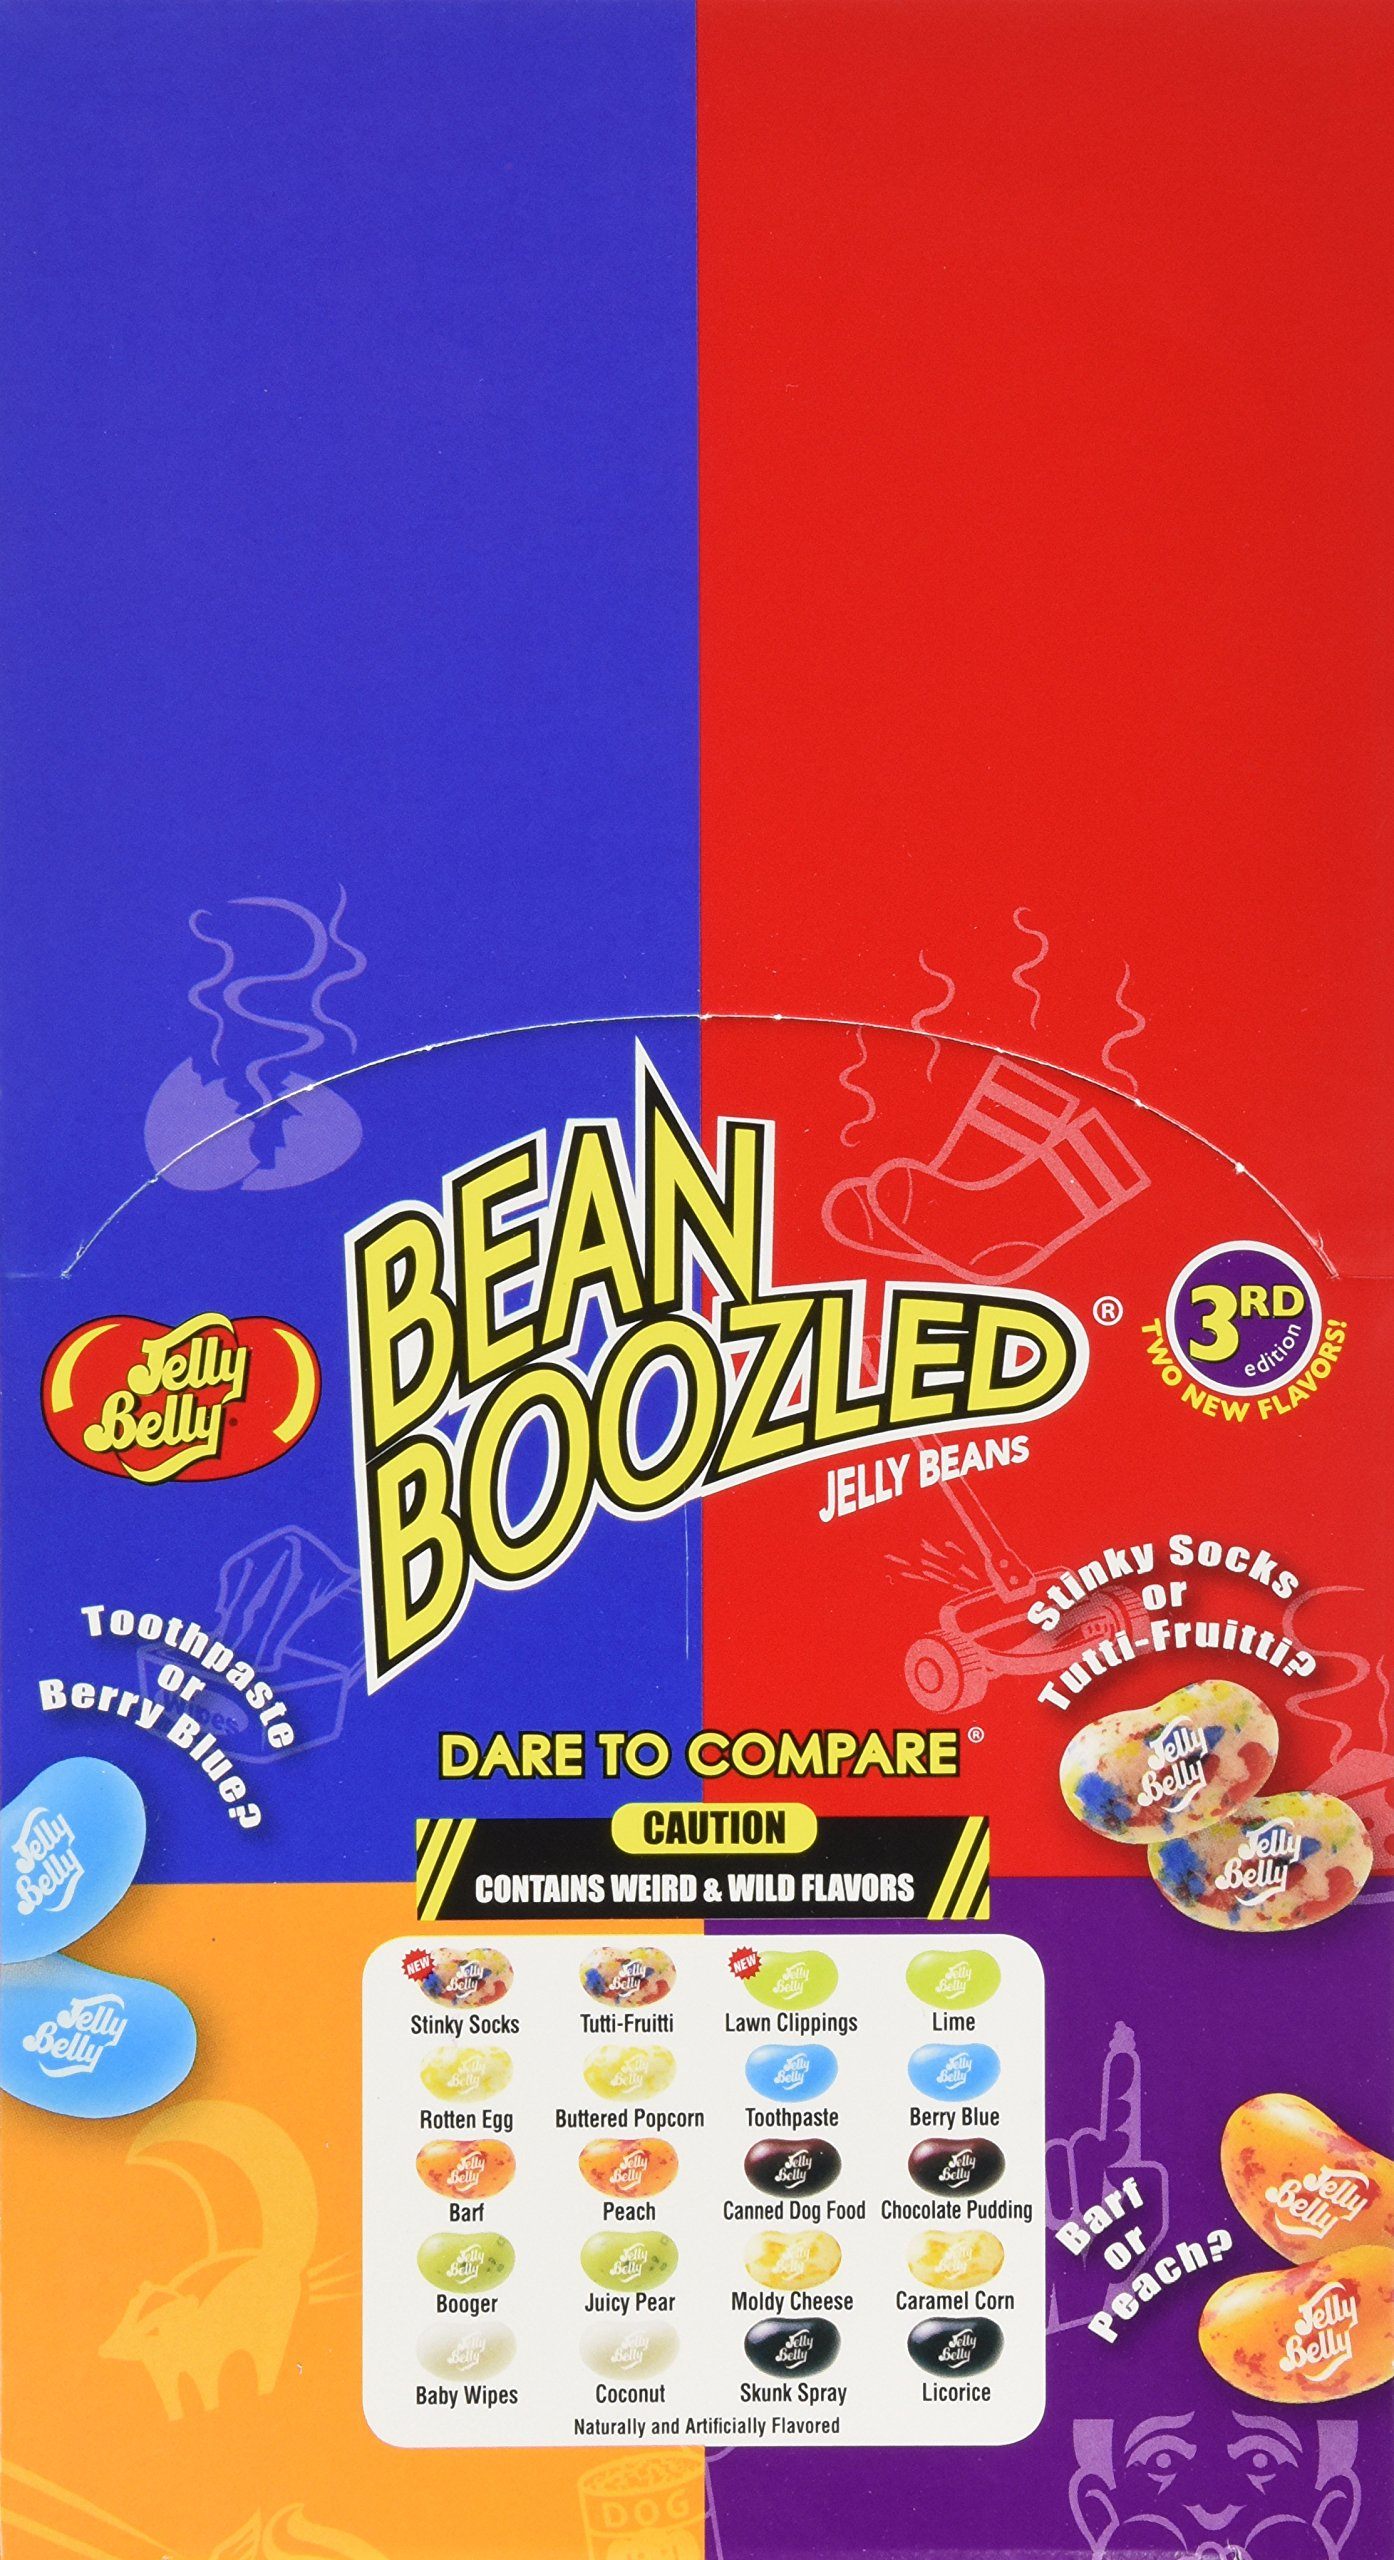 Jelly Belly BeanBoozled (Bean Boozled) 1.6 ounces x 24 boxes by Jelly Belly